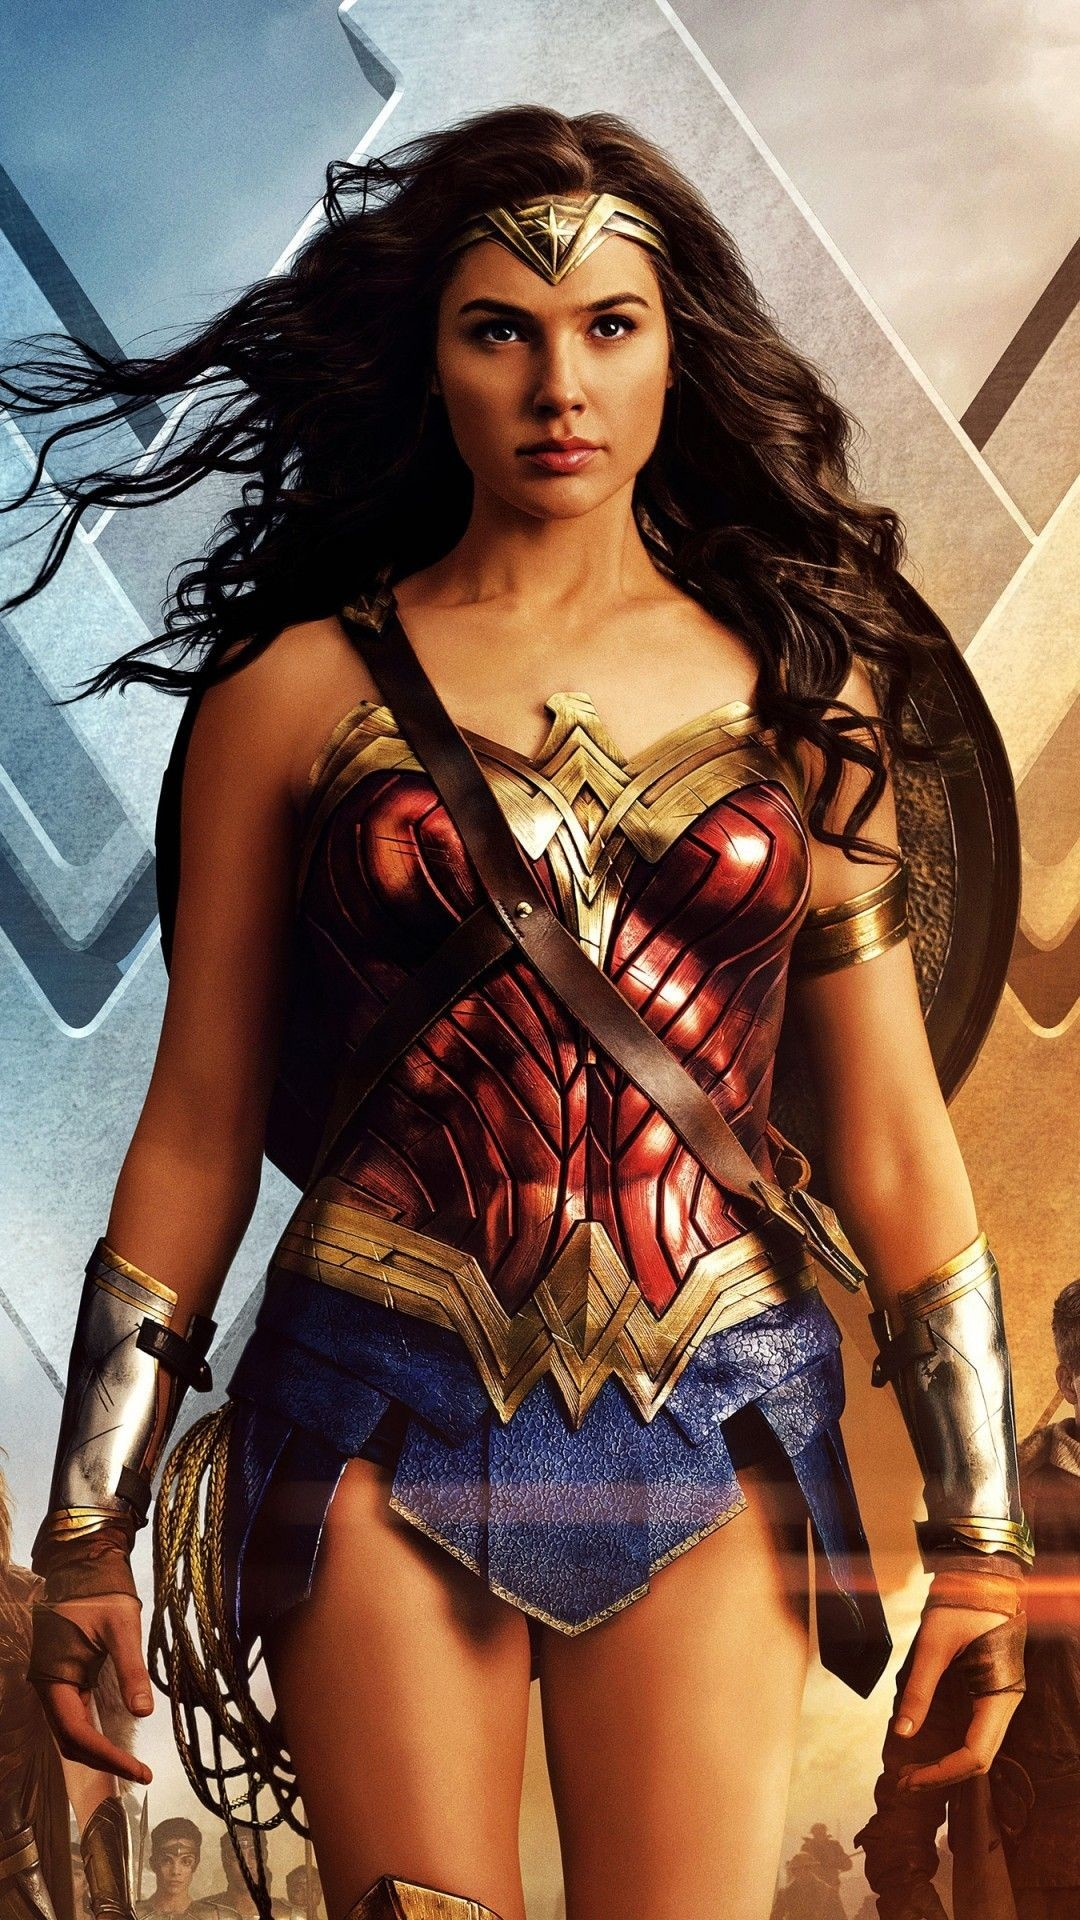 1080x1920 Wonder Woman Wallpaper Gal Gadot - Best iPhone Wallpaper